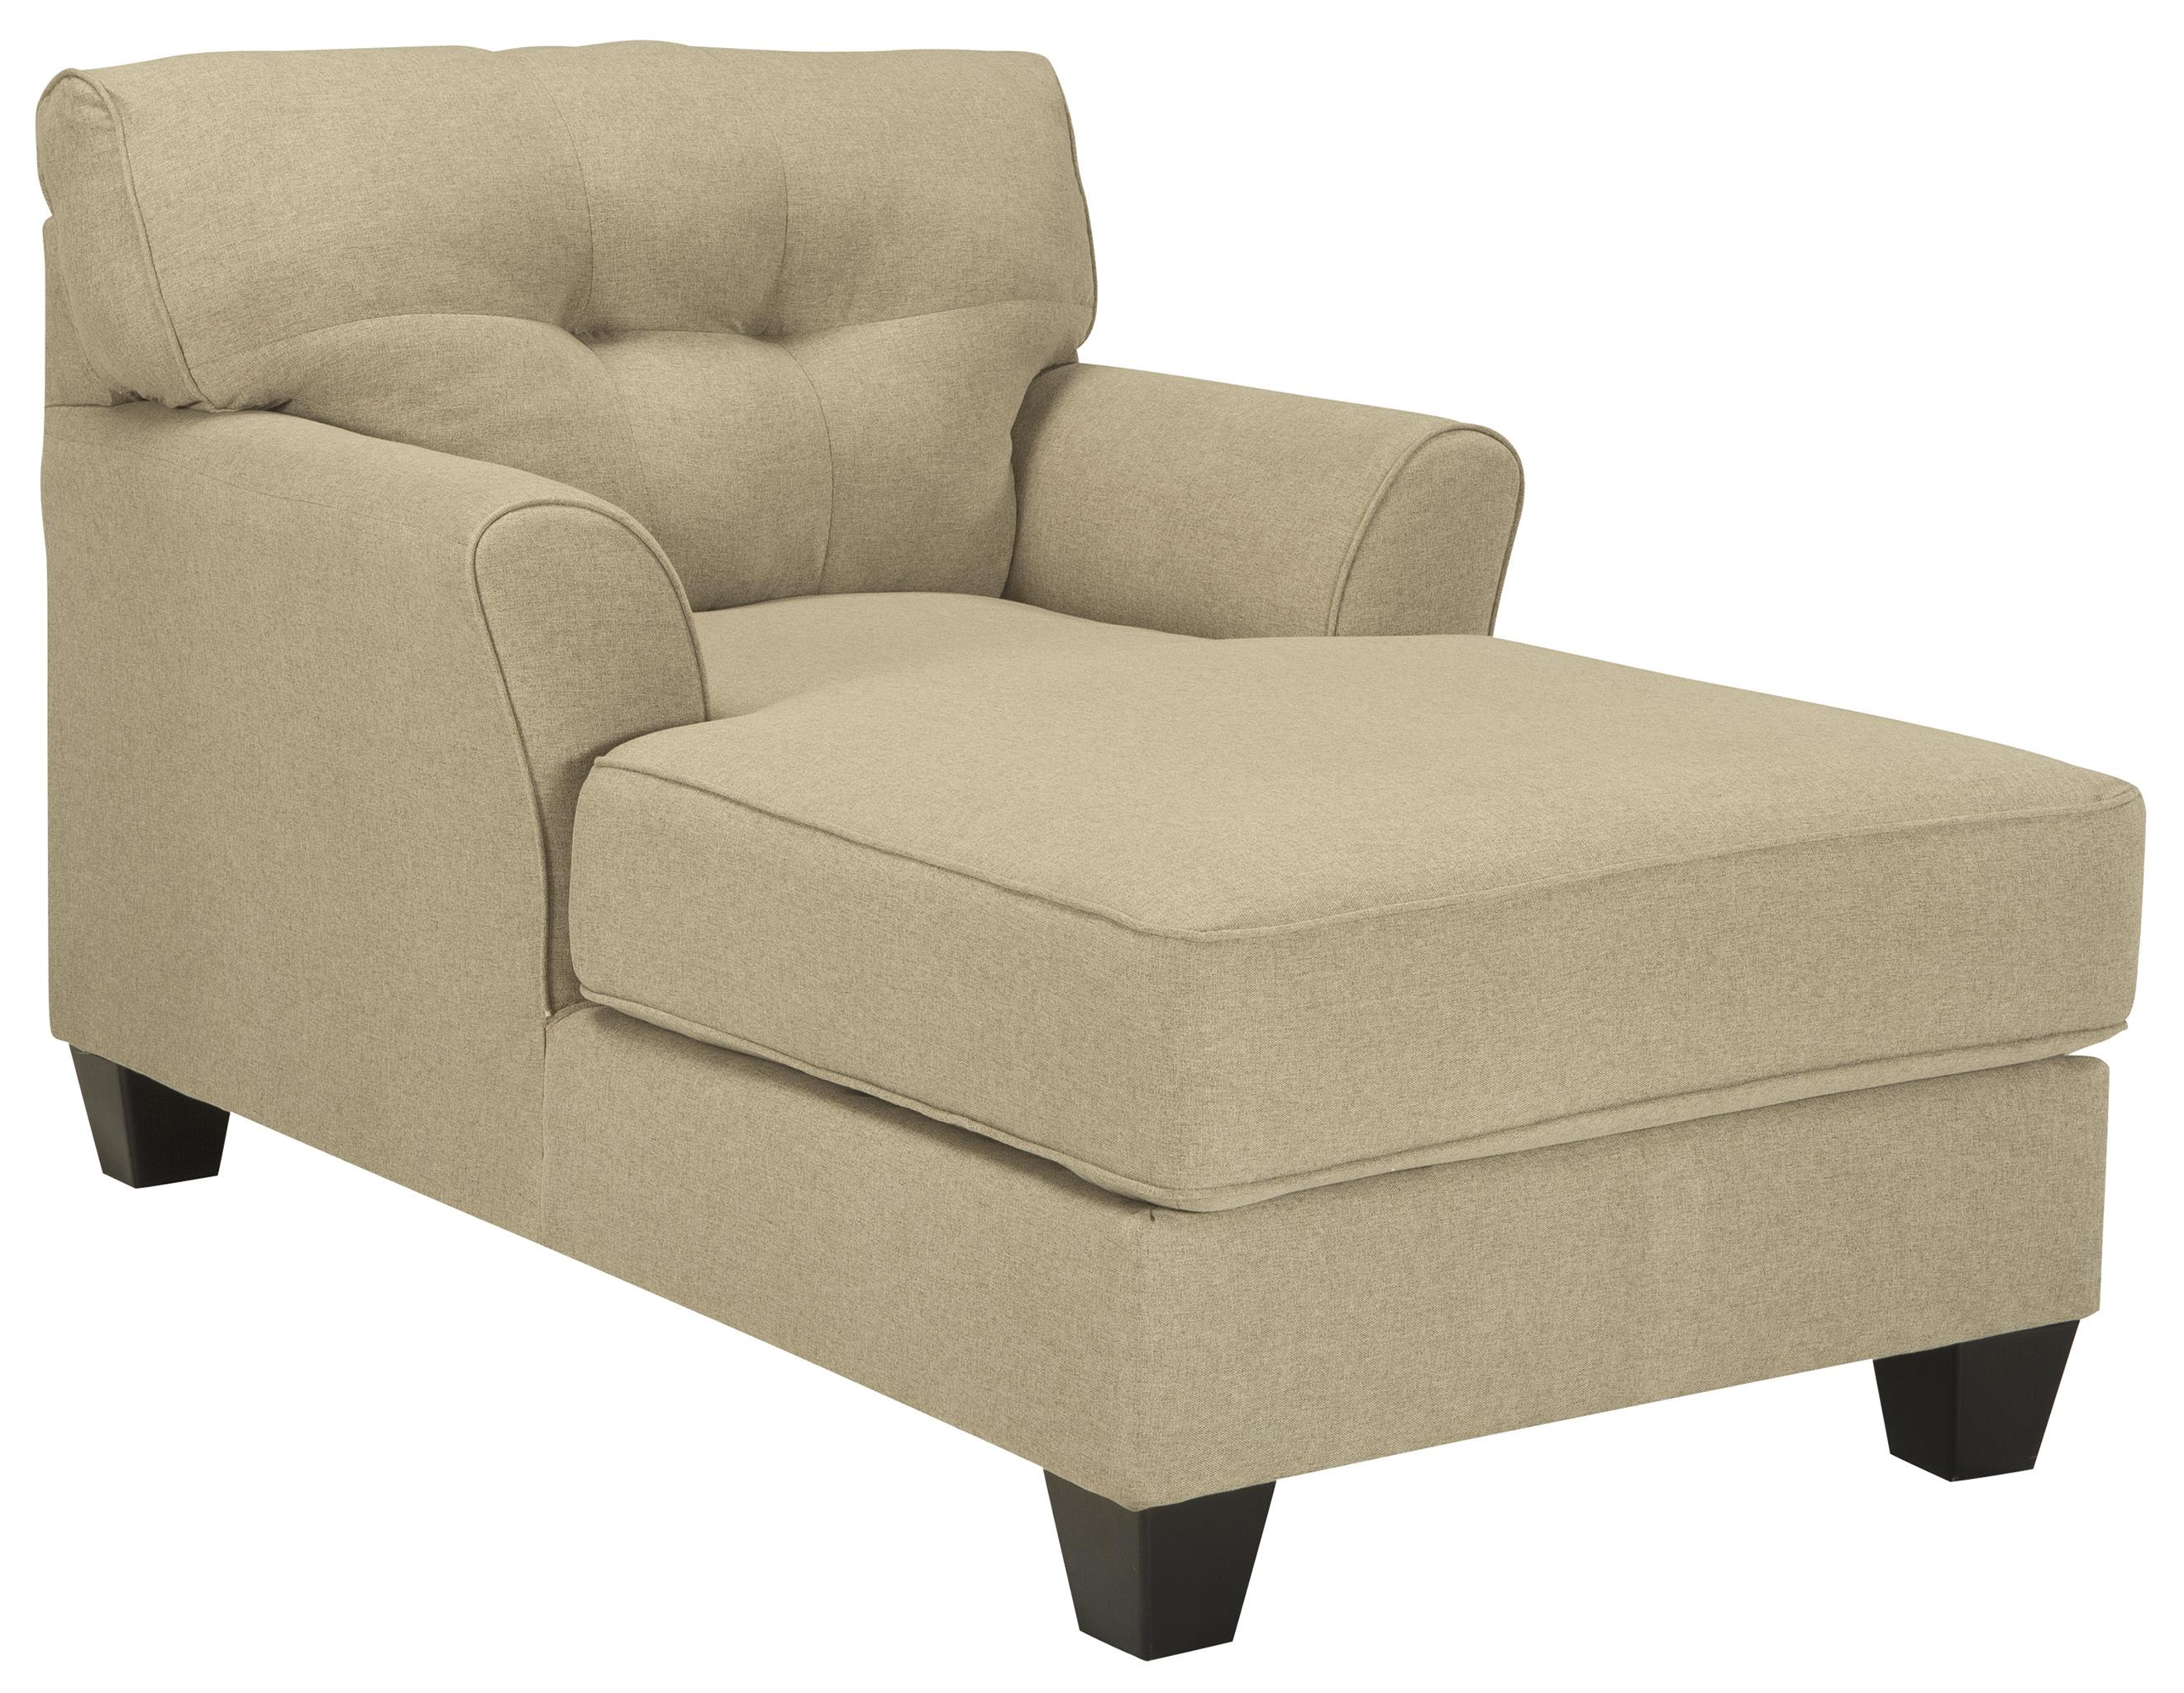 Buttonless Tufted Two Arm Chaise